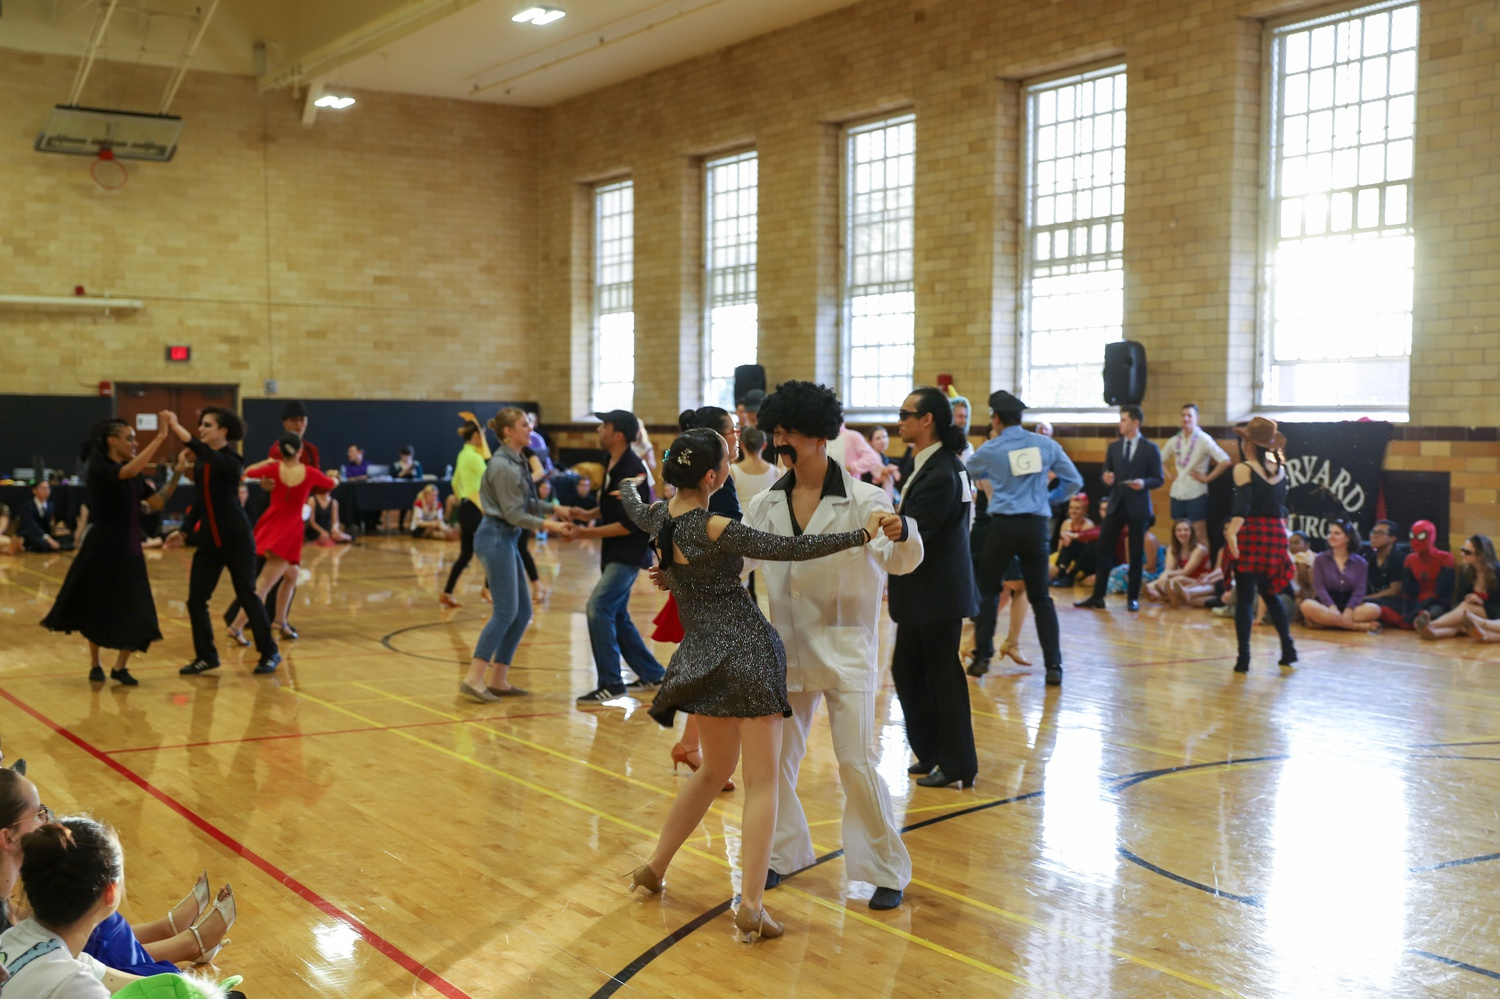 Harvard Beginners is one of two major annual competitions hosted by the Harvard Ballroom Dance Team. This compedition is geared primarily toward including beginner dancers.